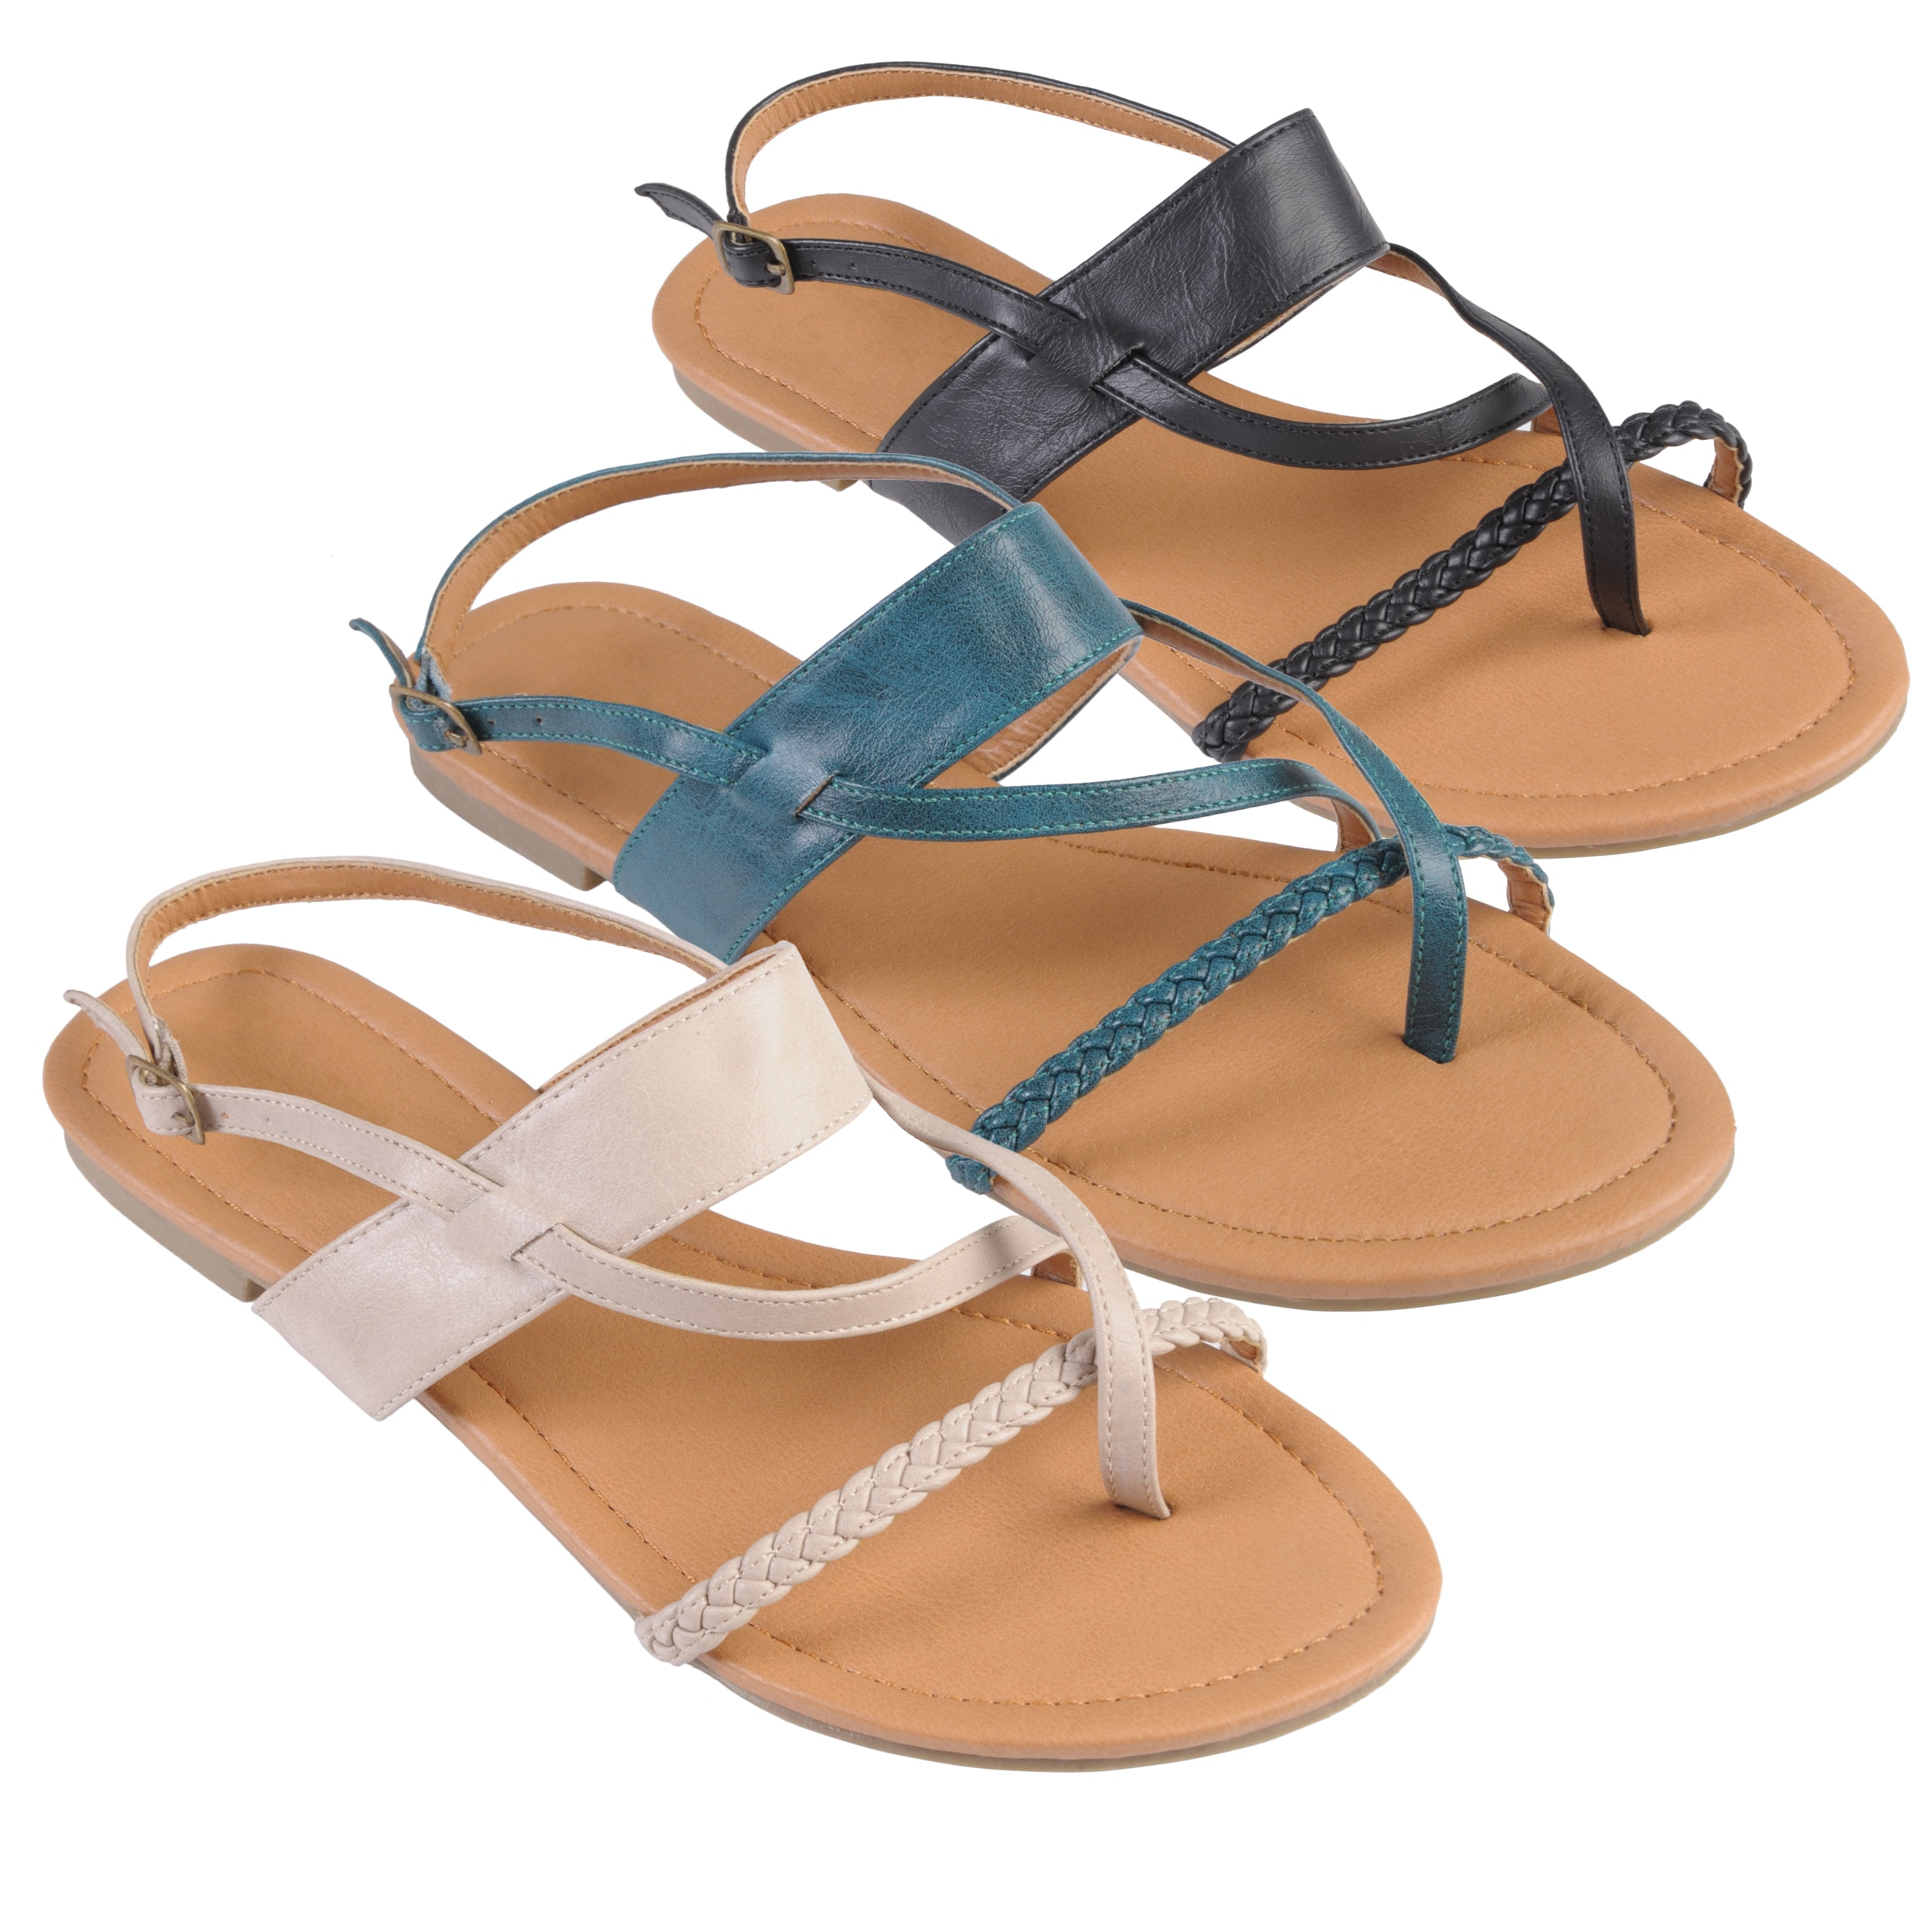 Journee Collection Women's 'Grass-35' Strappy Thong Flat Sandals